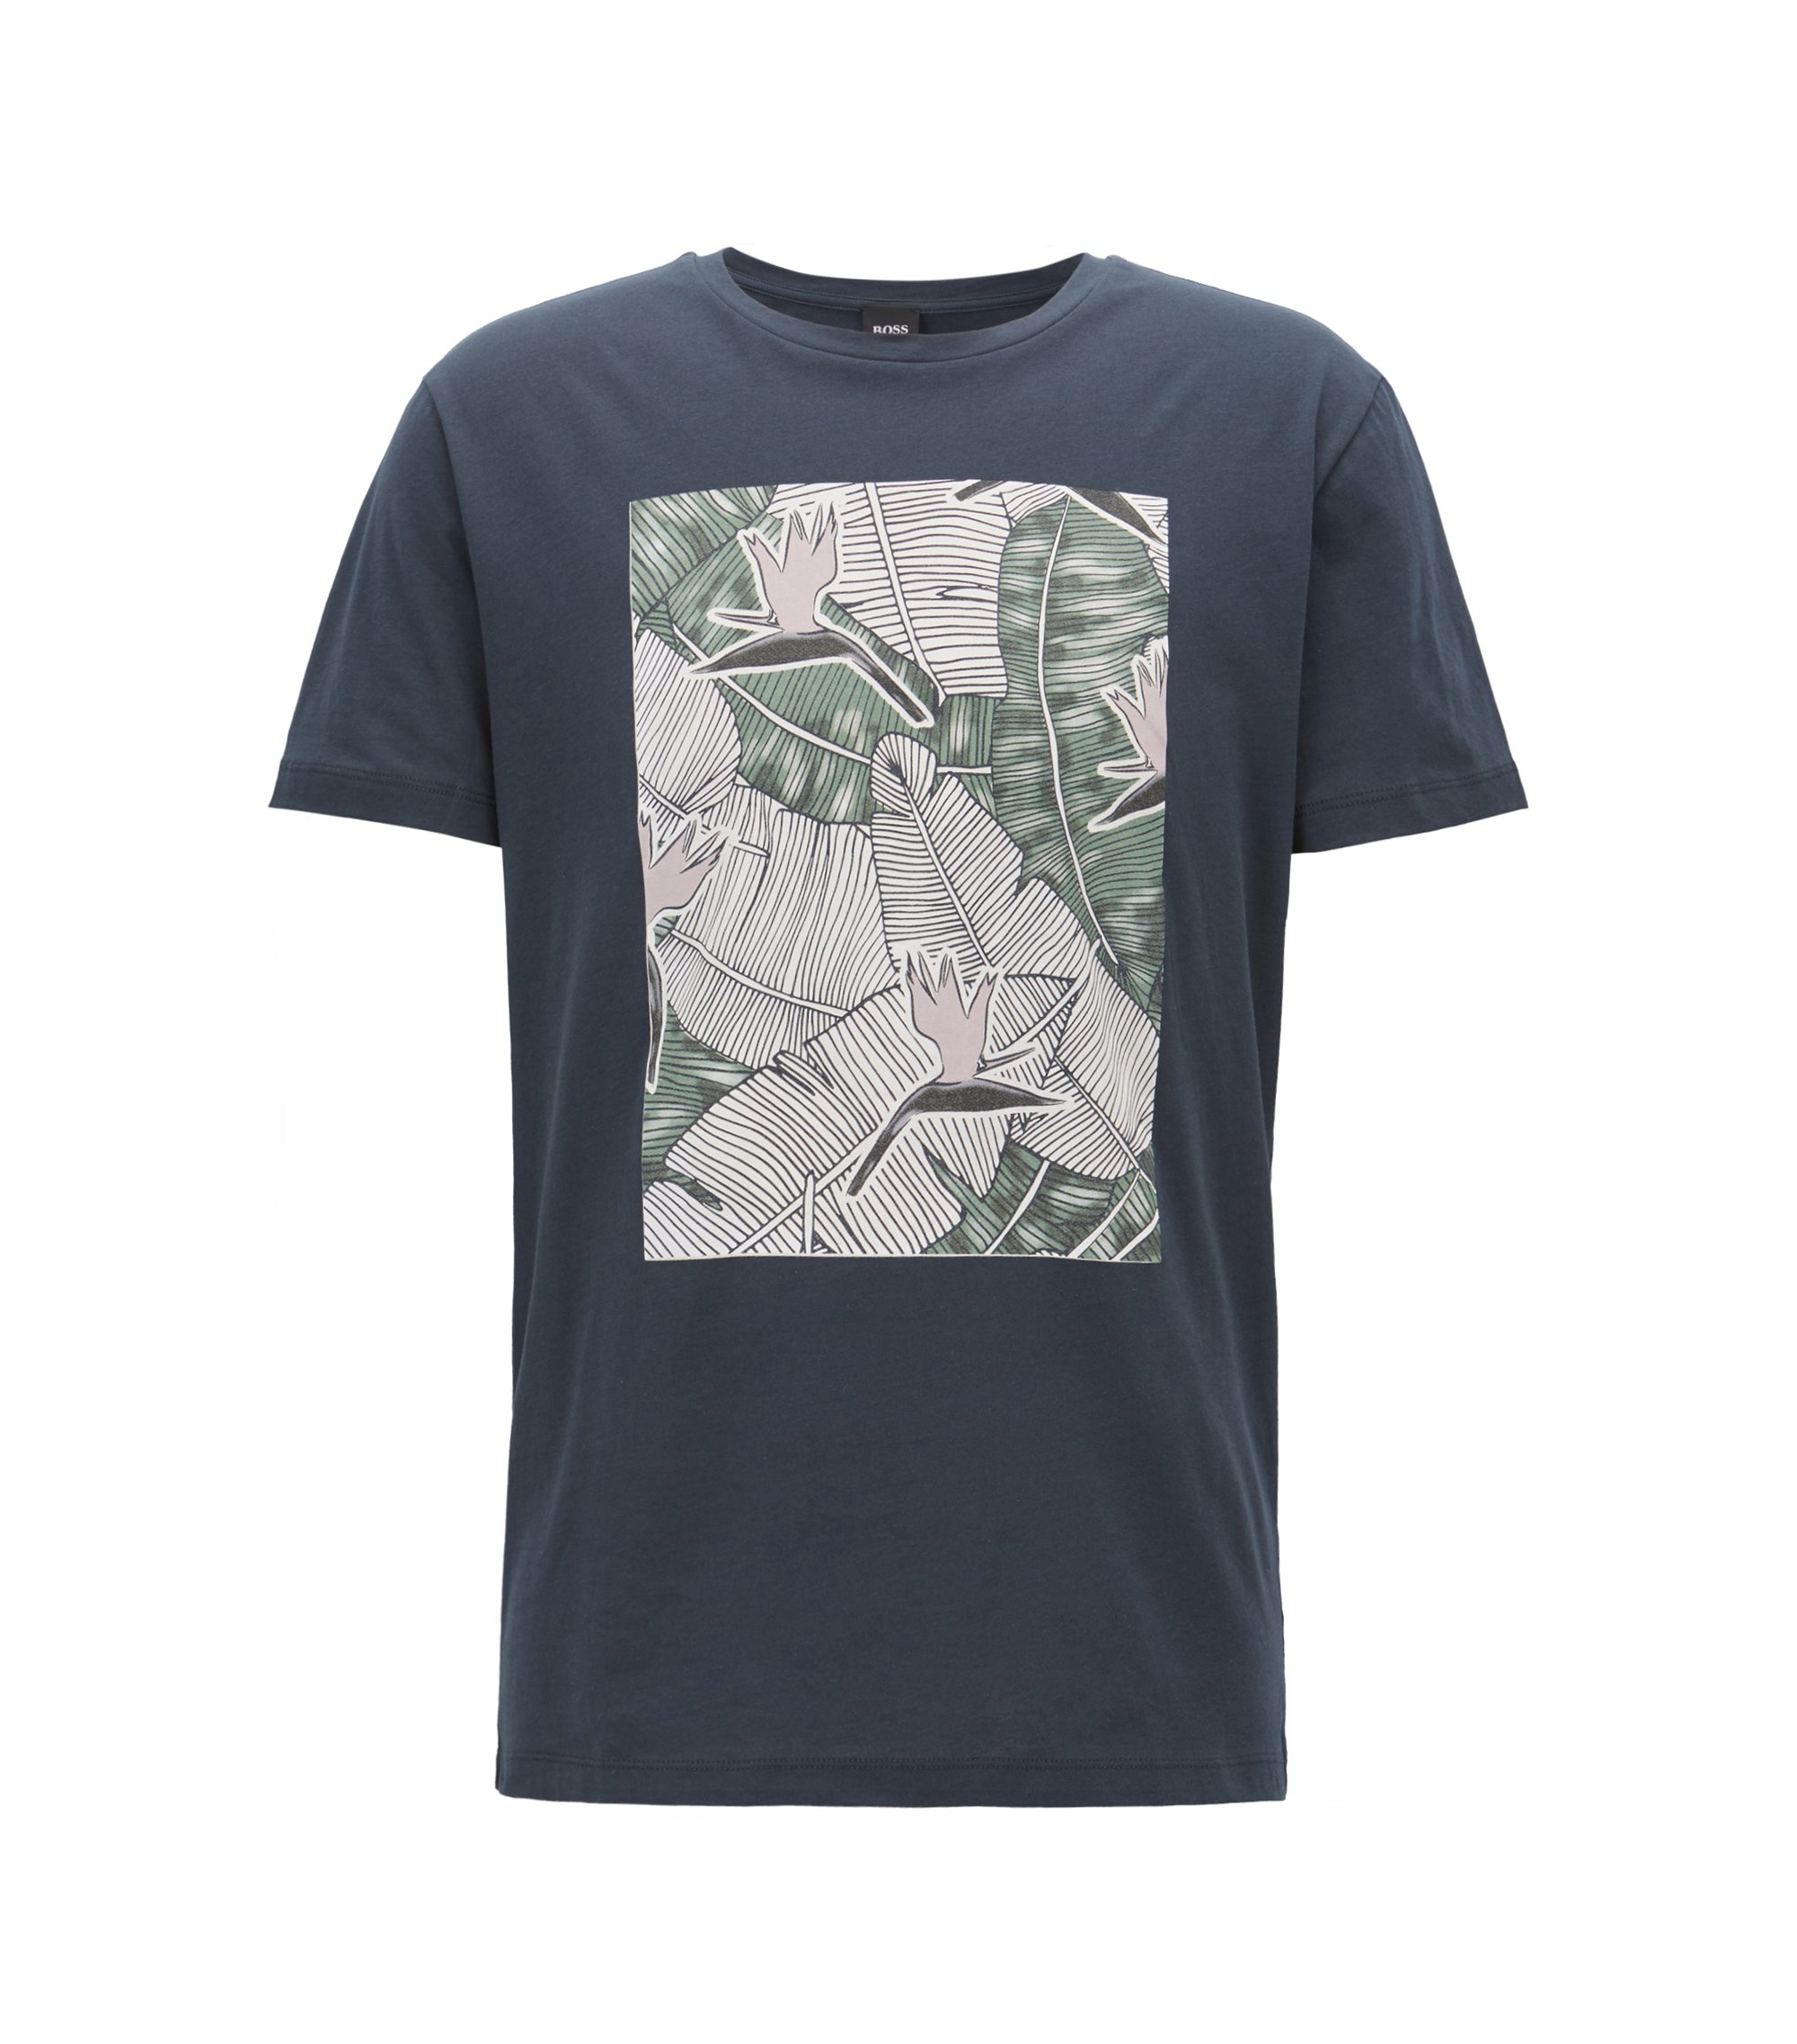 Graphic-print T-shirt in washed cotton jersey, Dark Blue